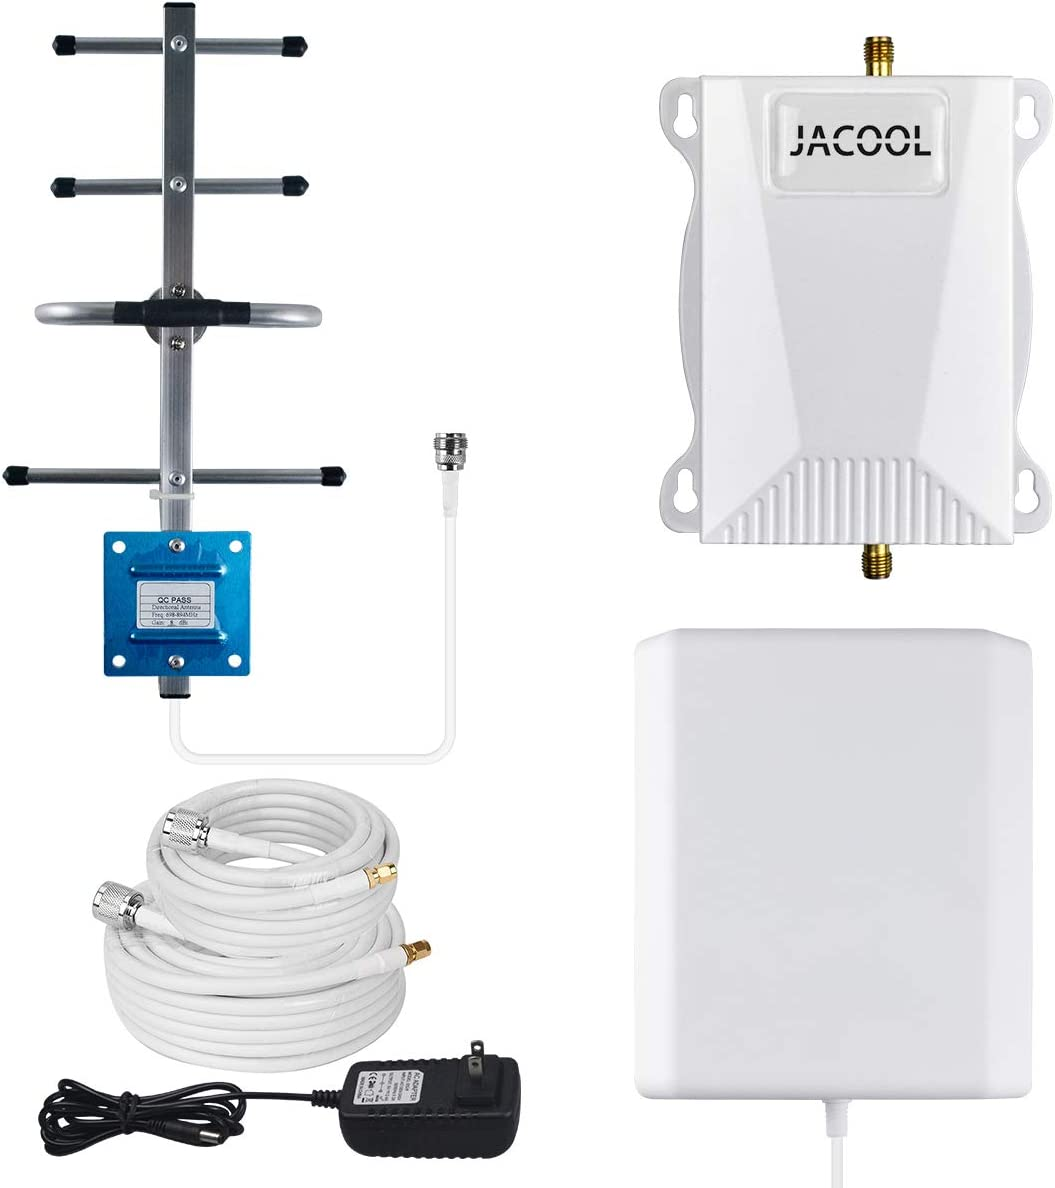 AT&T Cell Phone Signal Booster 4G LTE ATT T-Mobile Cell Phone Booster 700MHz Band 12/17 Cell Signal Booster FDD 4G AT&T Mobile Signal Amplifier Repeater for Home Use - Faster 4G Data Speed